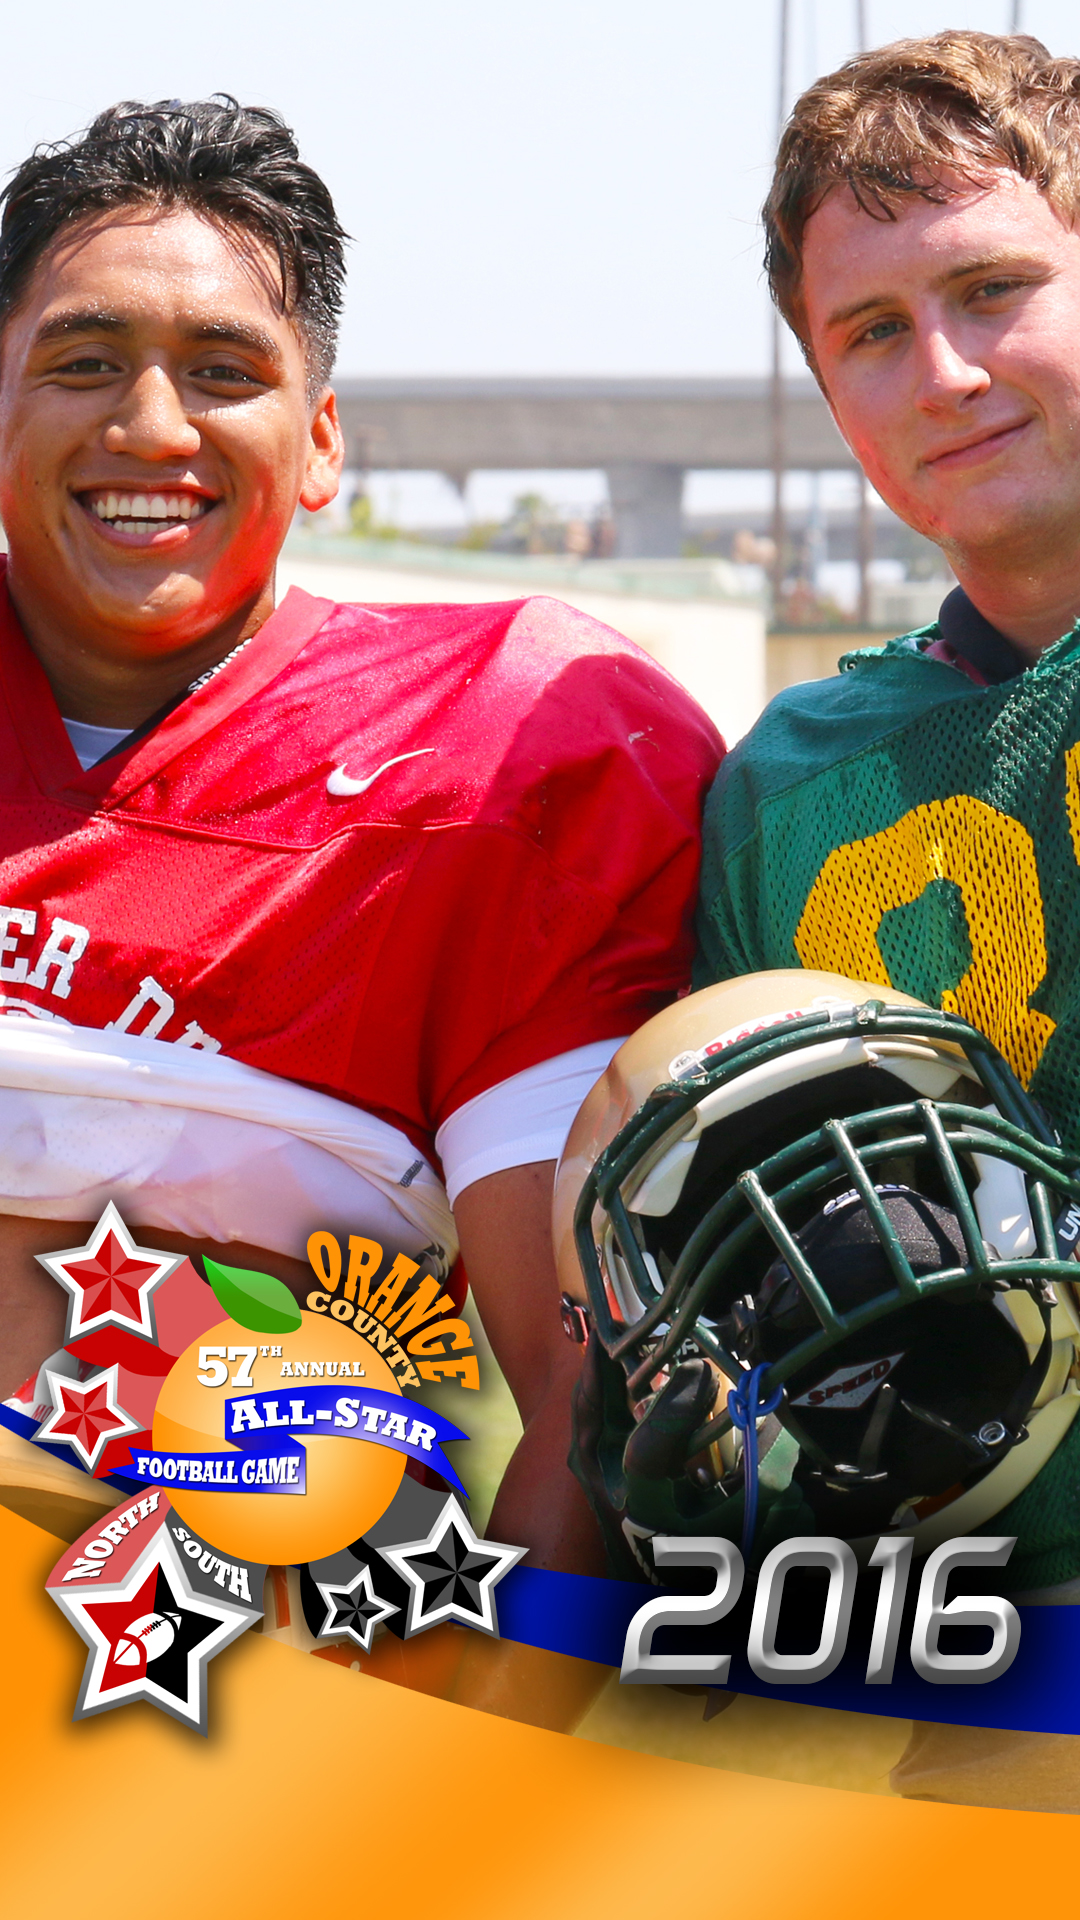 2016 OC All-Star Football Game